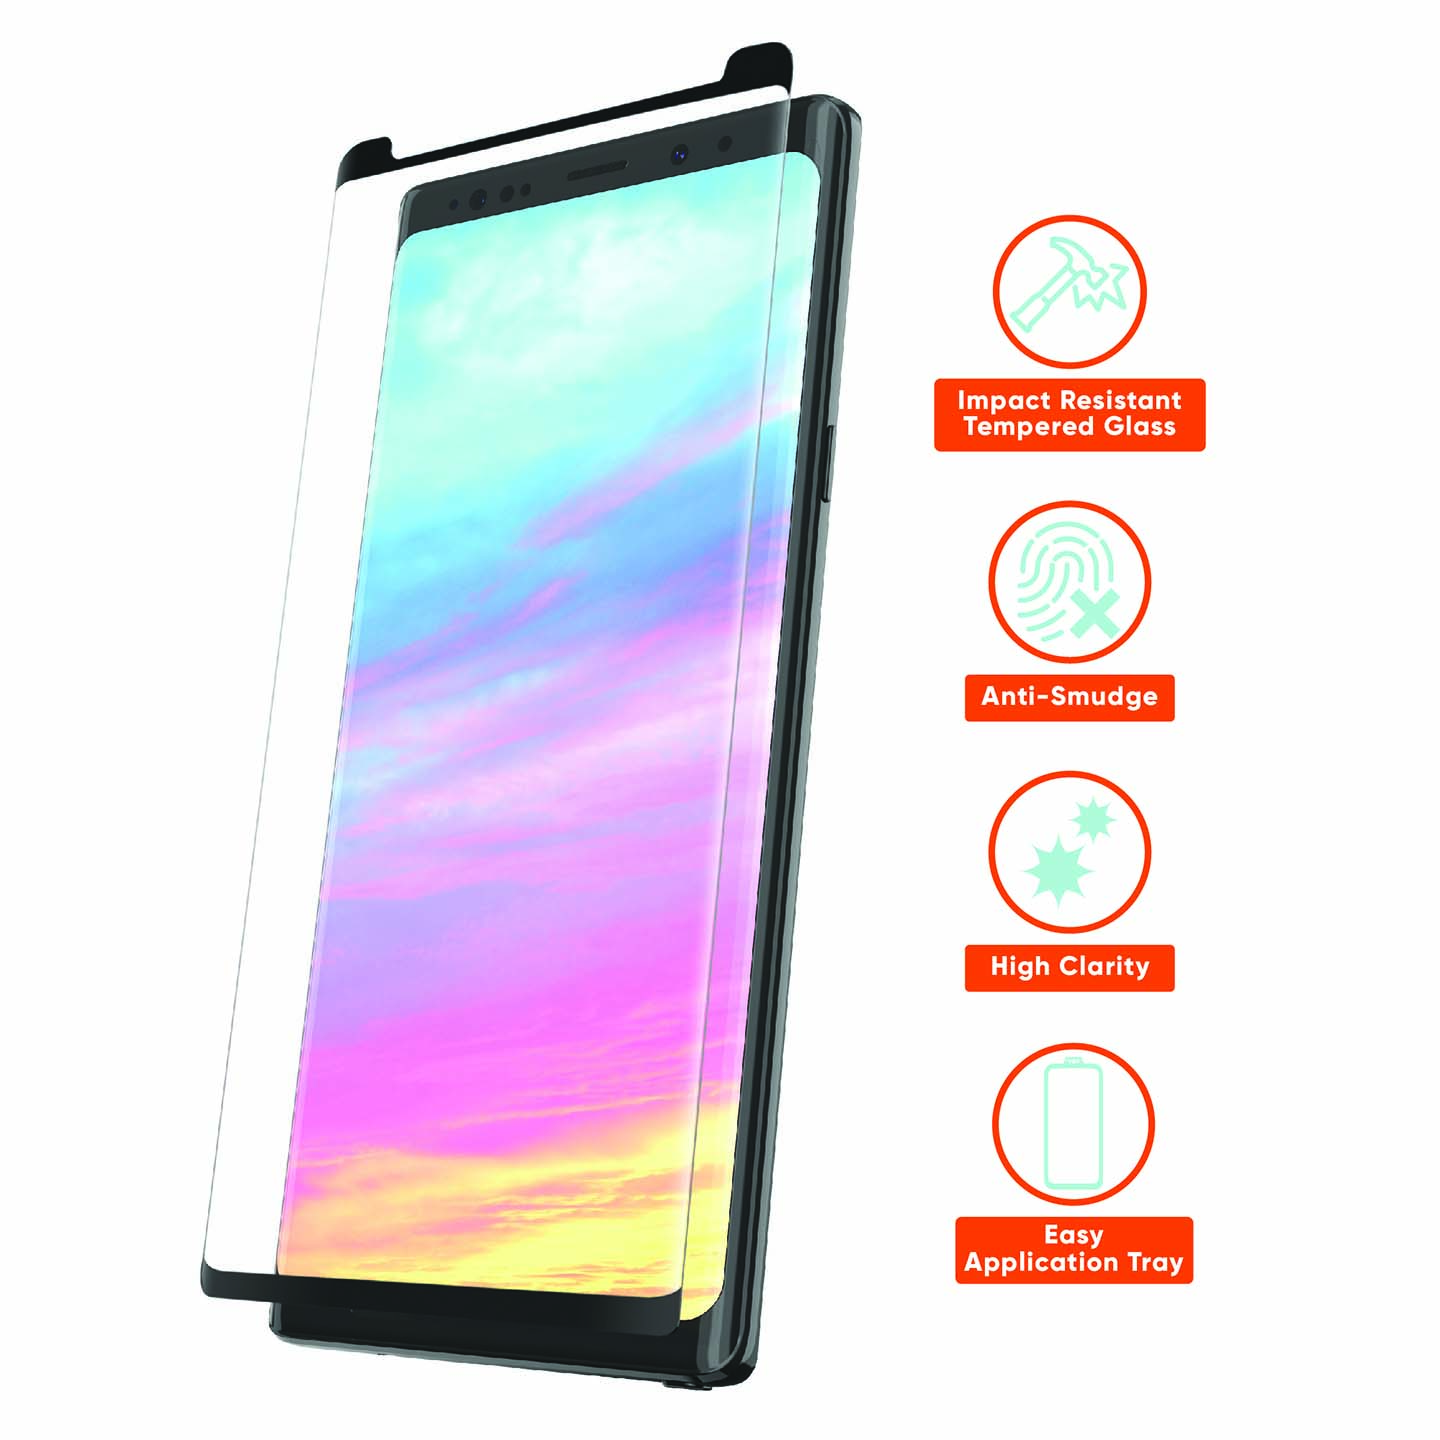 high-Definition Screen Ultra-Thin Body Tempered Glass Version of Electronic Photo Frame 12 13 14 15 19 22-inch Ultra-Thin high-Definition Digital Photo Frame